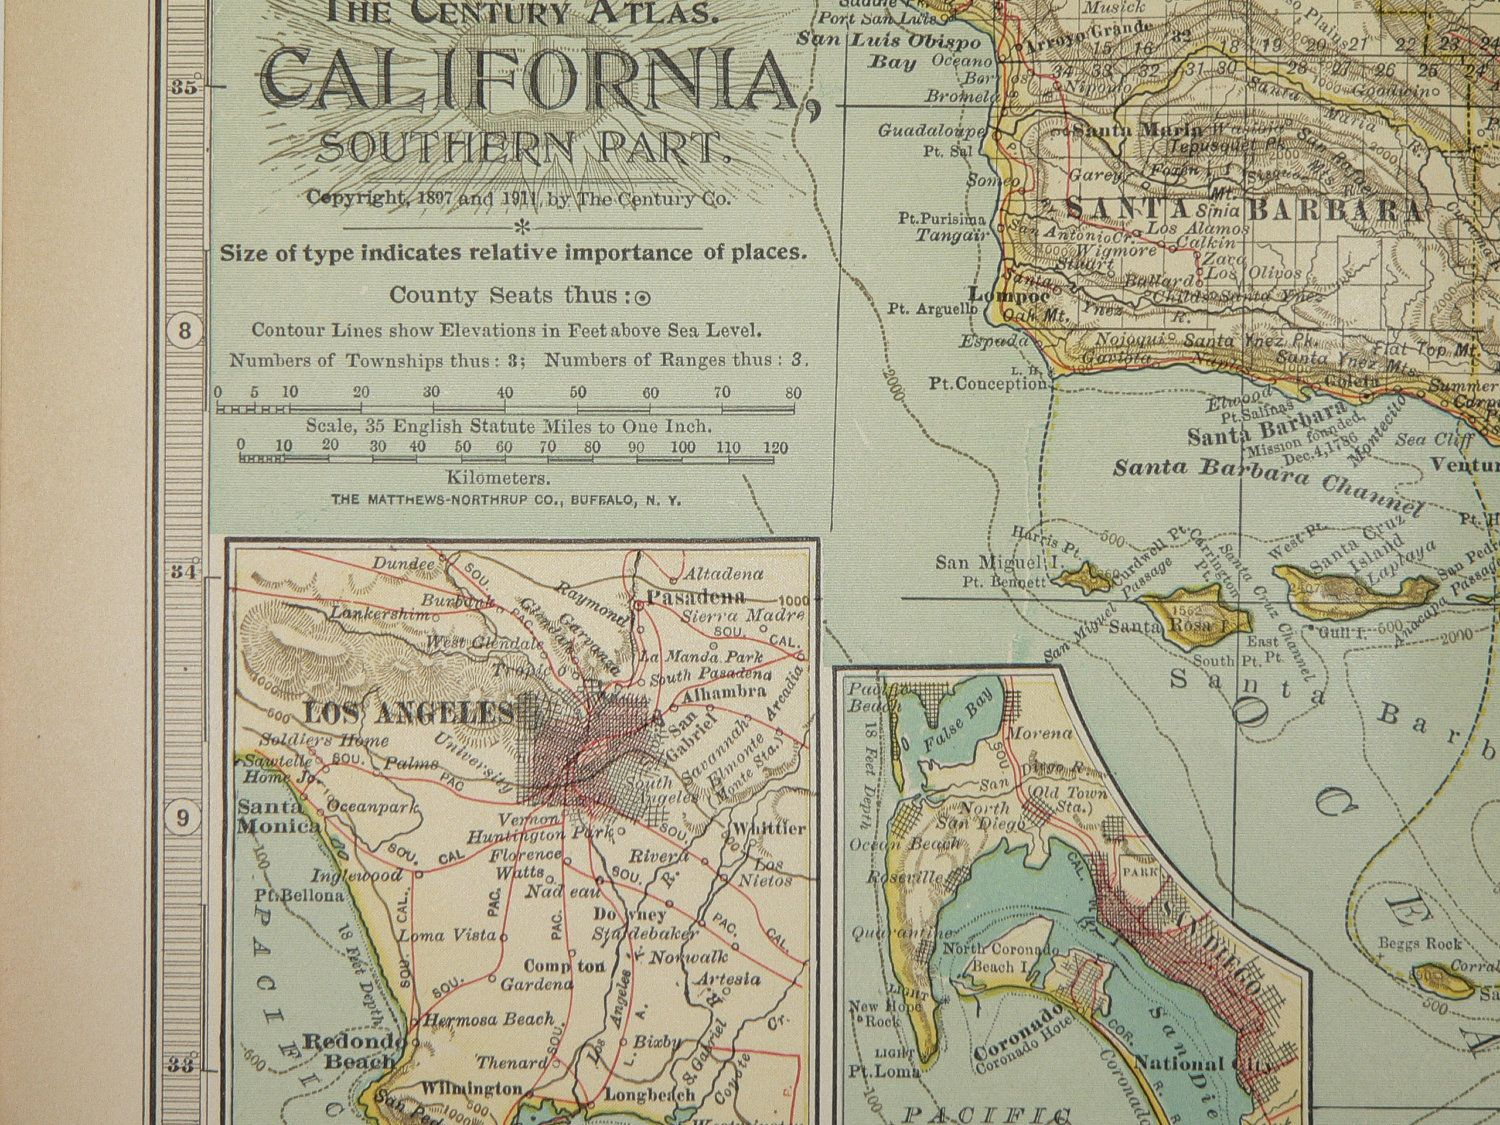 State Parks Southern California Antique 1911